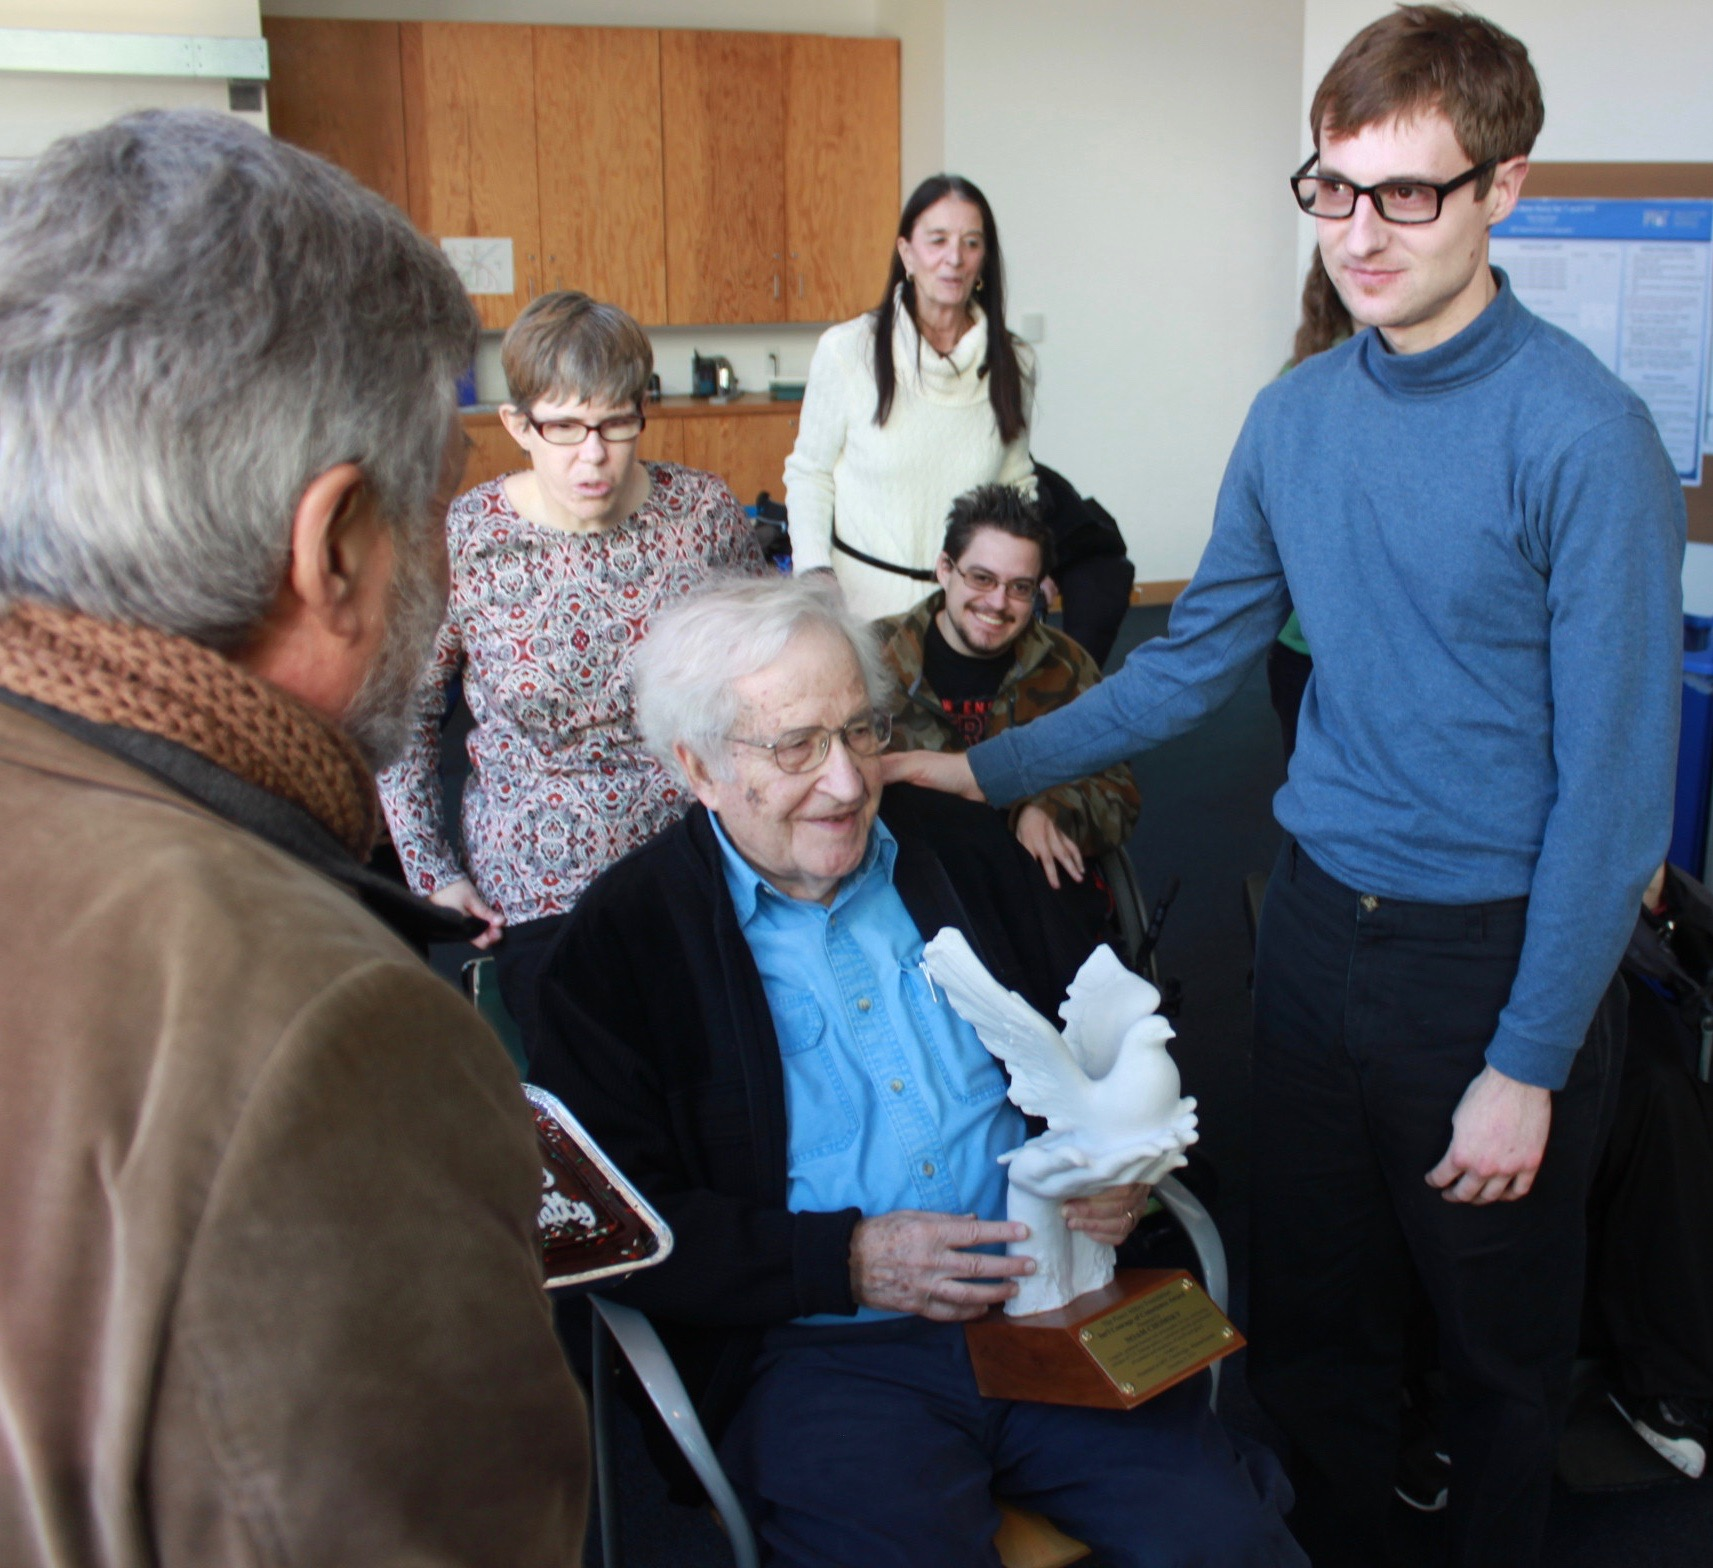 Noam Chomsky with Matty at MIT.